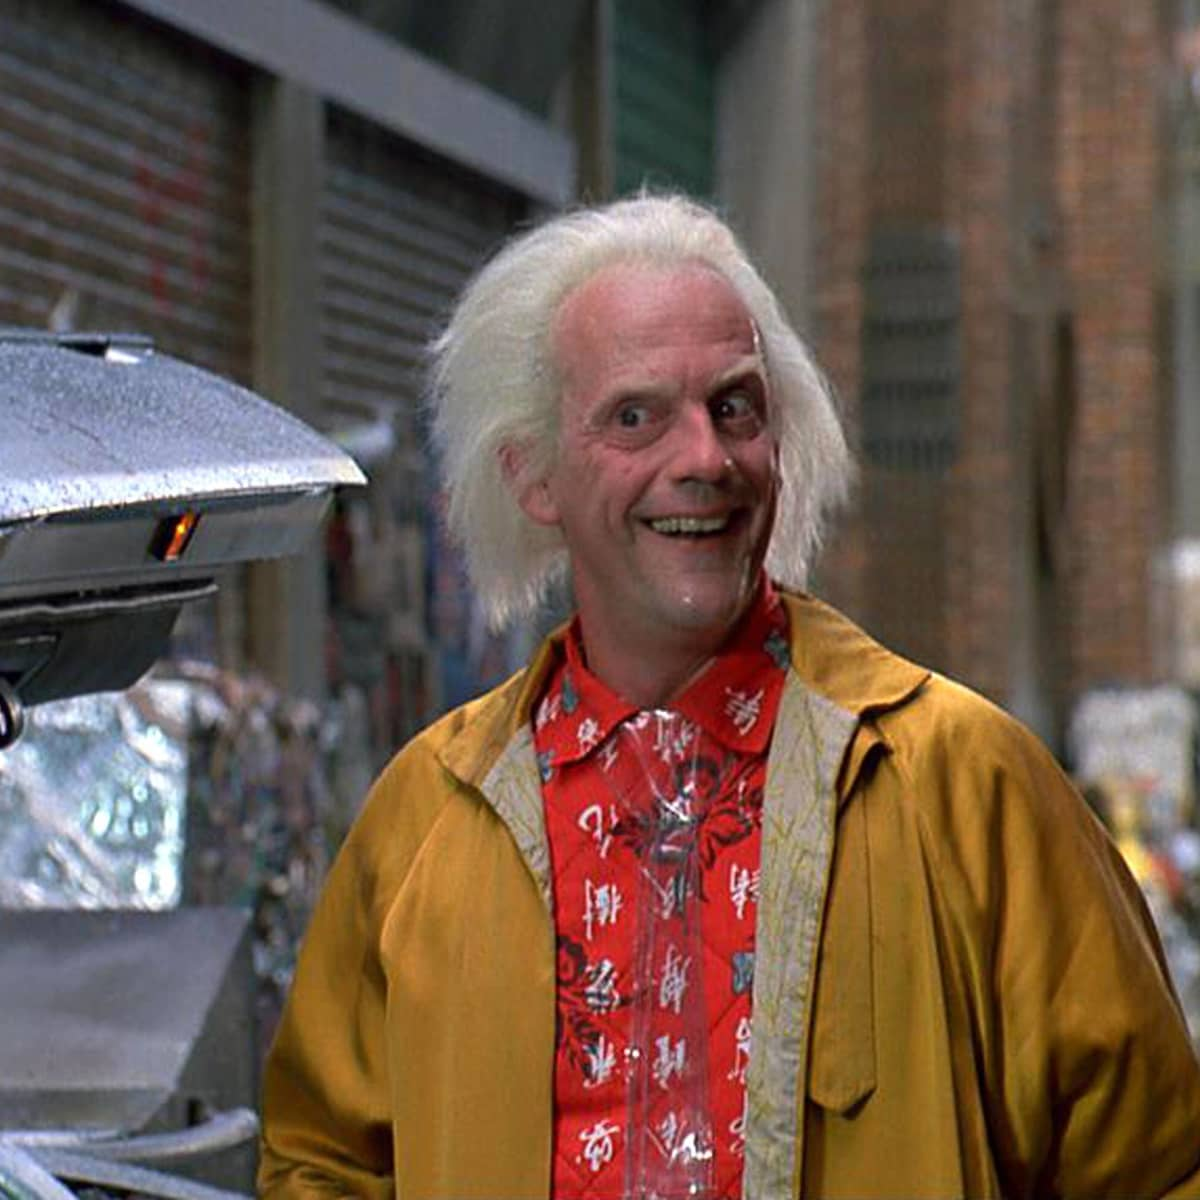 Back To The Future This Is Christopher Lloyd Today